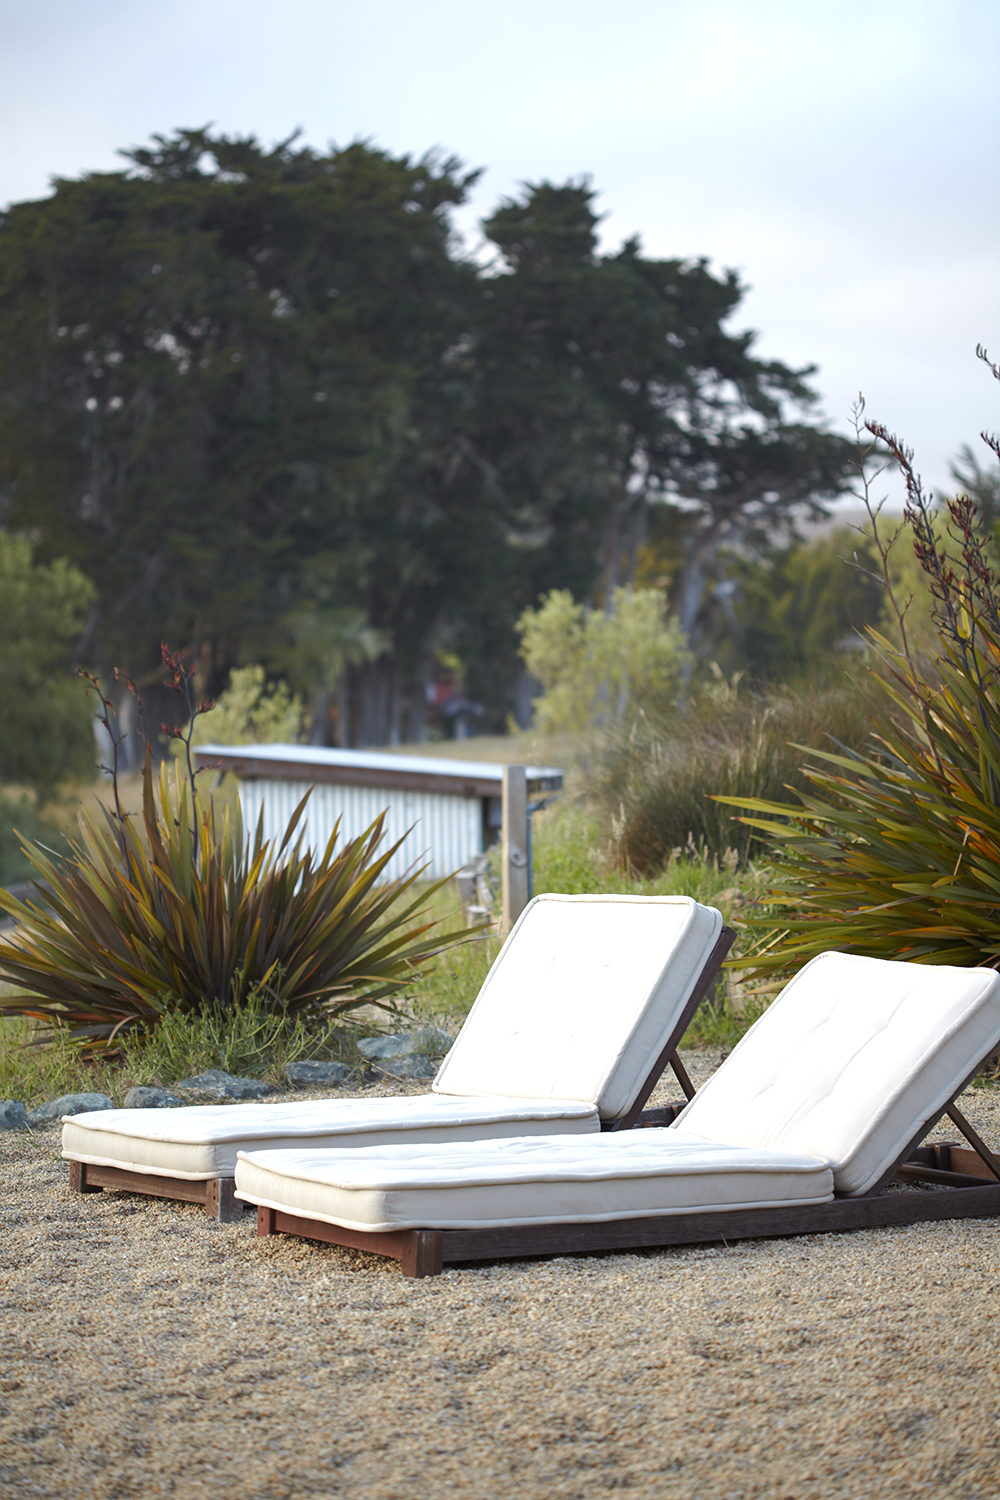 Katie Newburn | San Francisco Bay Area Food and Lifestyle Photographer | Backyard Lounge Chairs